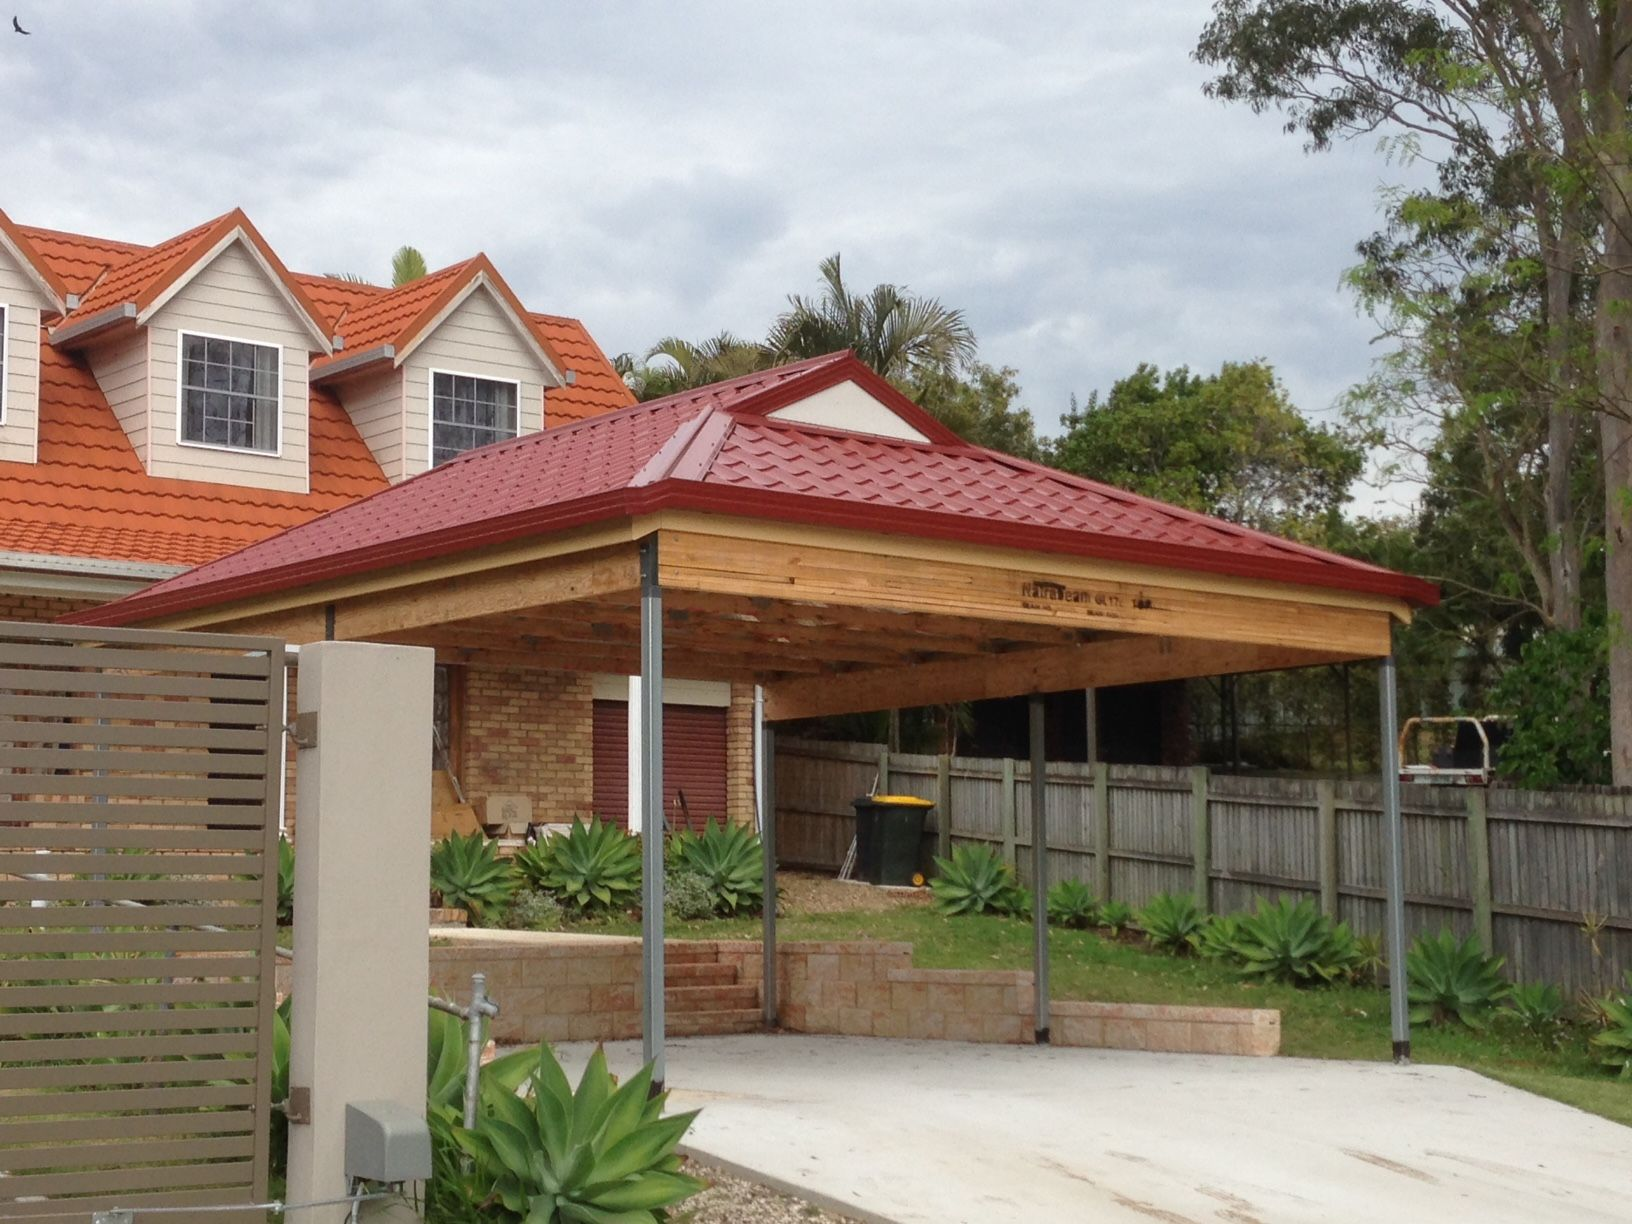 Metal Tile Roofing Carport Kits Roof Tiles Reroofing Metal